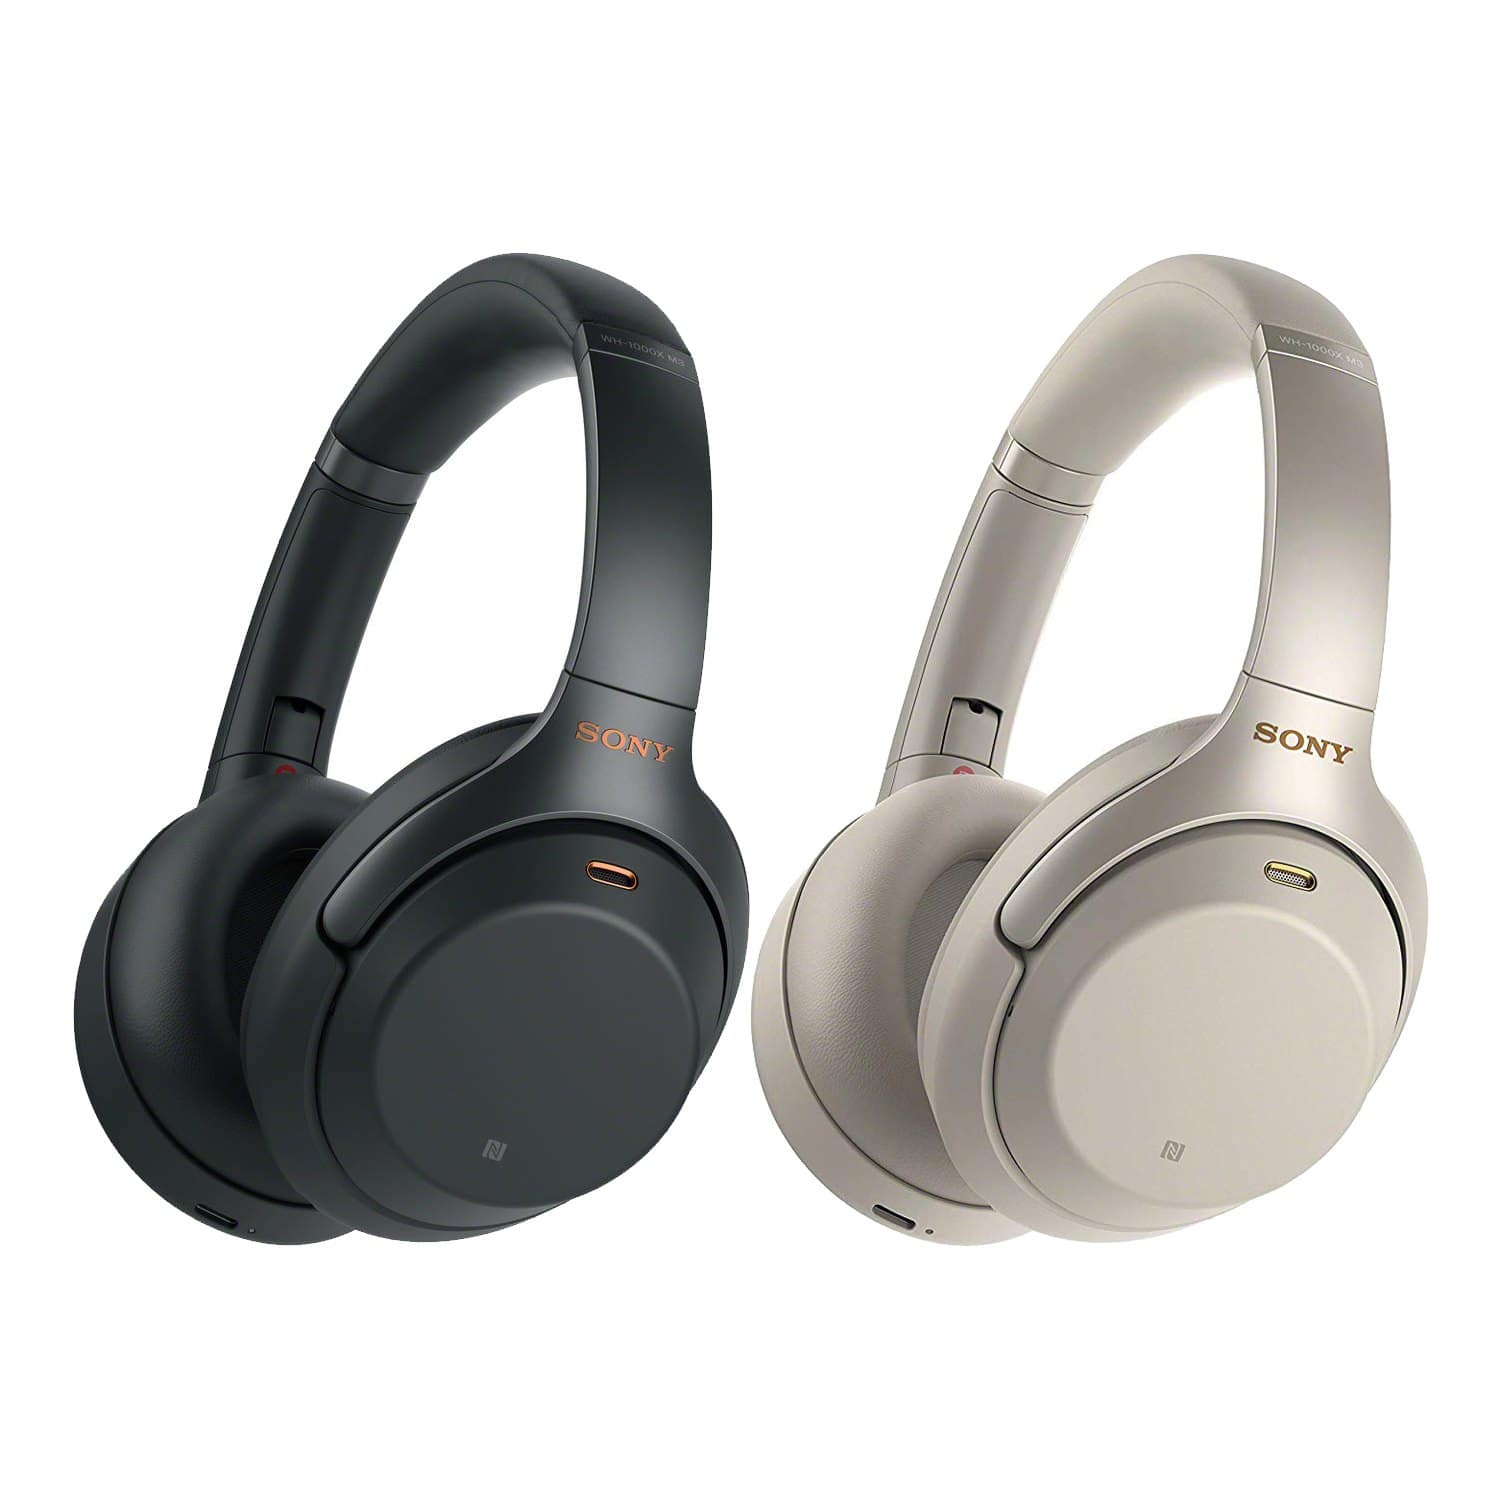 Sony WH-1000XM3 Wireless Noise Canceling Over-the-Ear Headphones with Google Assistant (Black) : $276.21 AC + FS